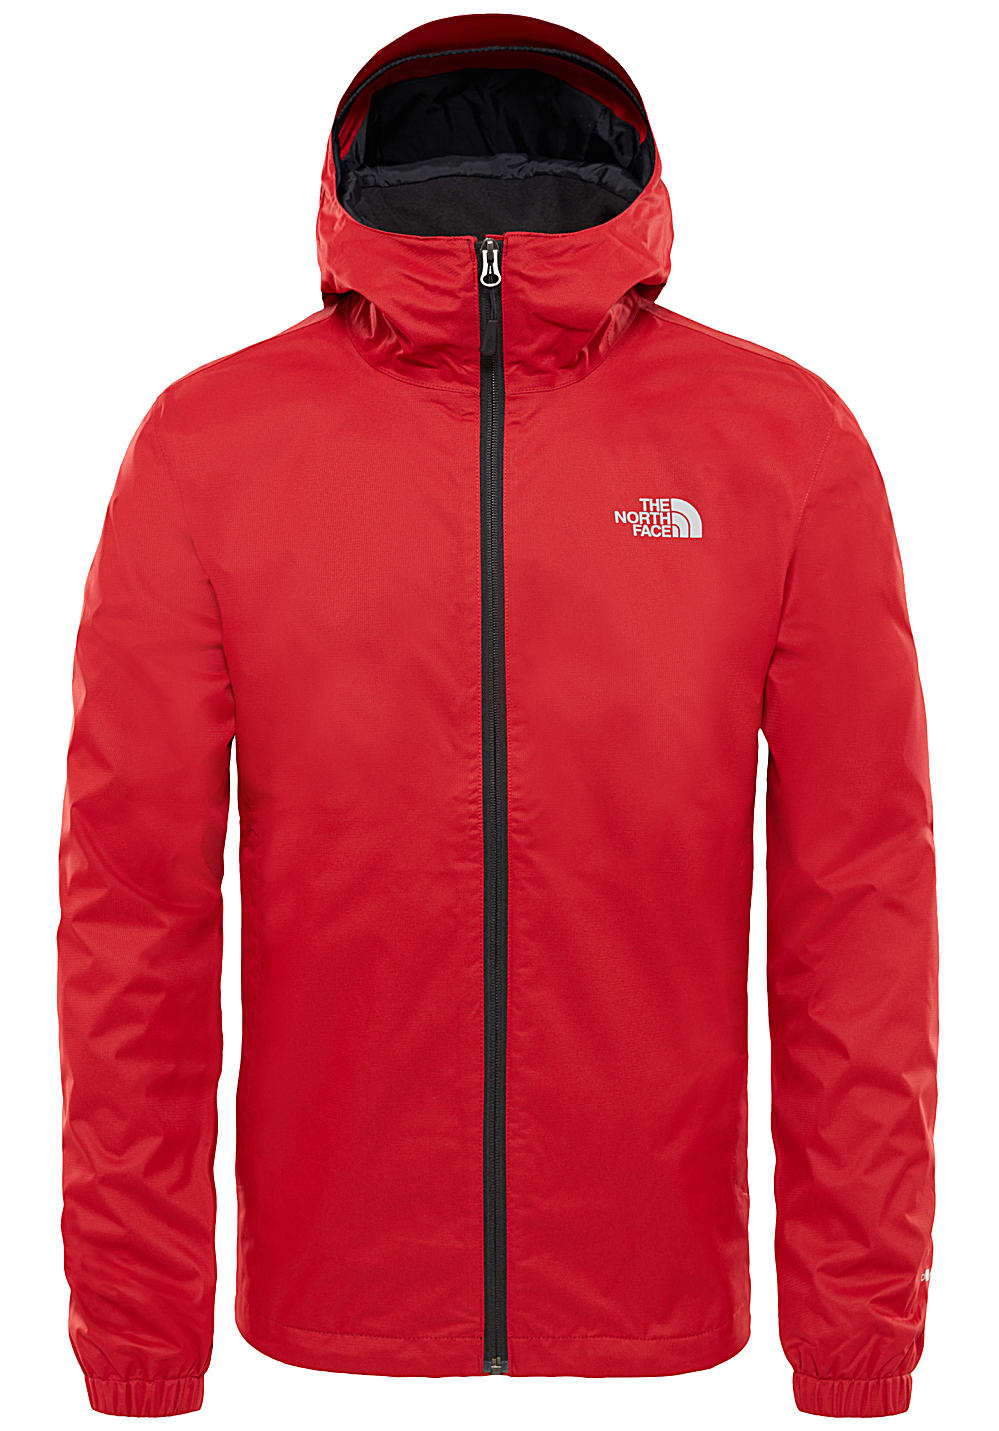 info for facab b6fcf THE NORTH FACE Quest - Jacke für Herren - Rot - Planet Sports